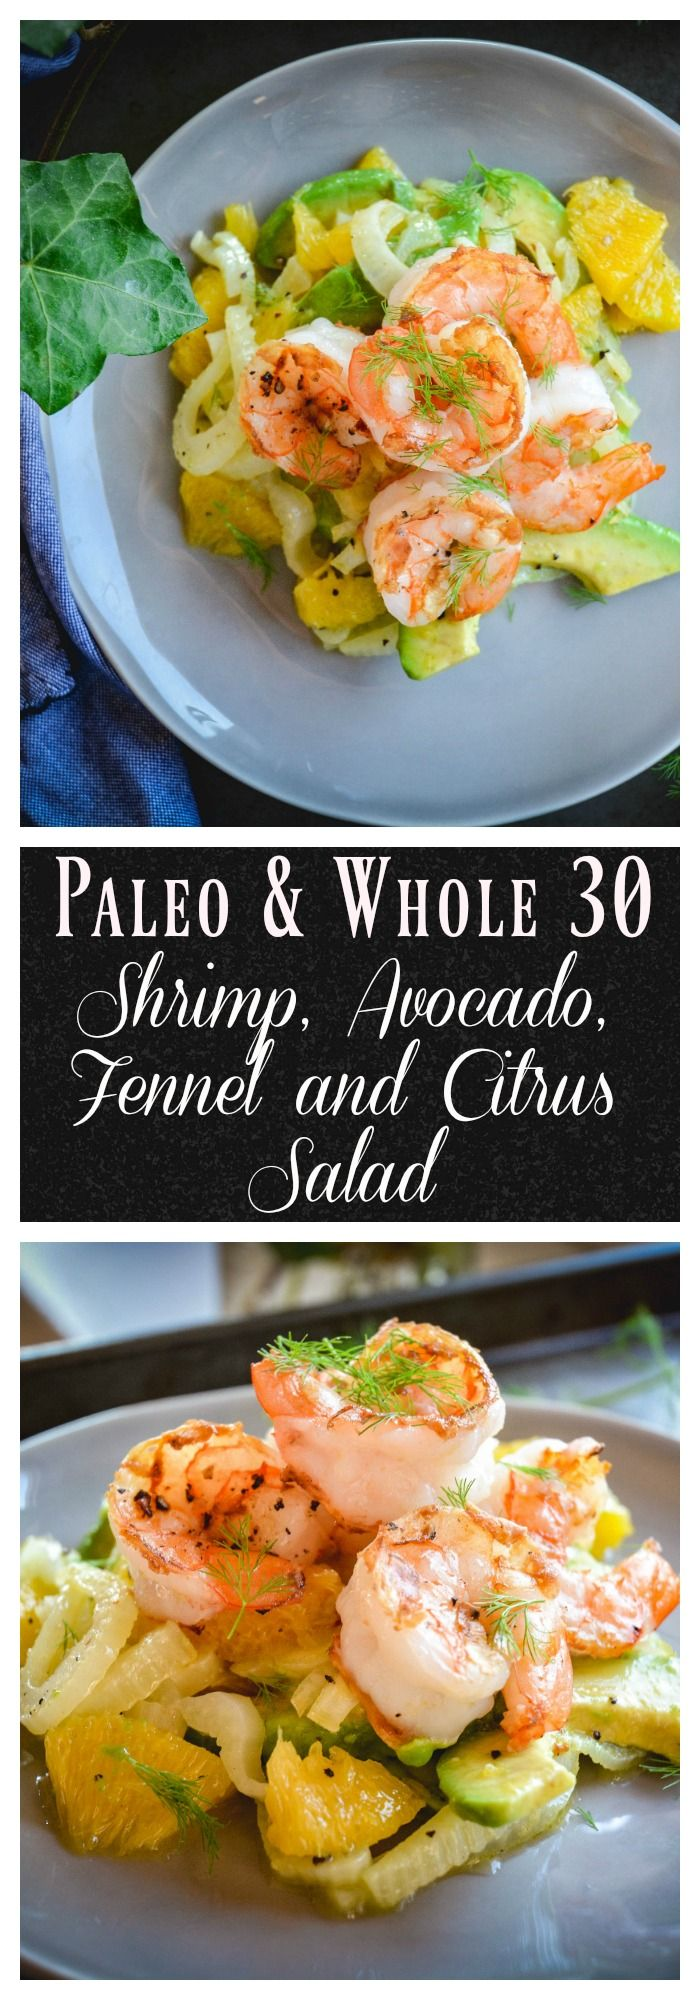 This refreshing salad will have you dreaming of California. It's simple to make with just 4 ingredients. You need avocado, orange, fennel and shrimp to whip up this recipe. #paleo, #whole30, #salad, #whole30salad, #shrimp, #avocado, #15minutemeal, #quickmeal